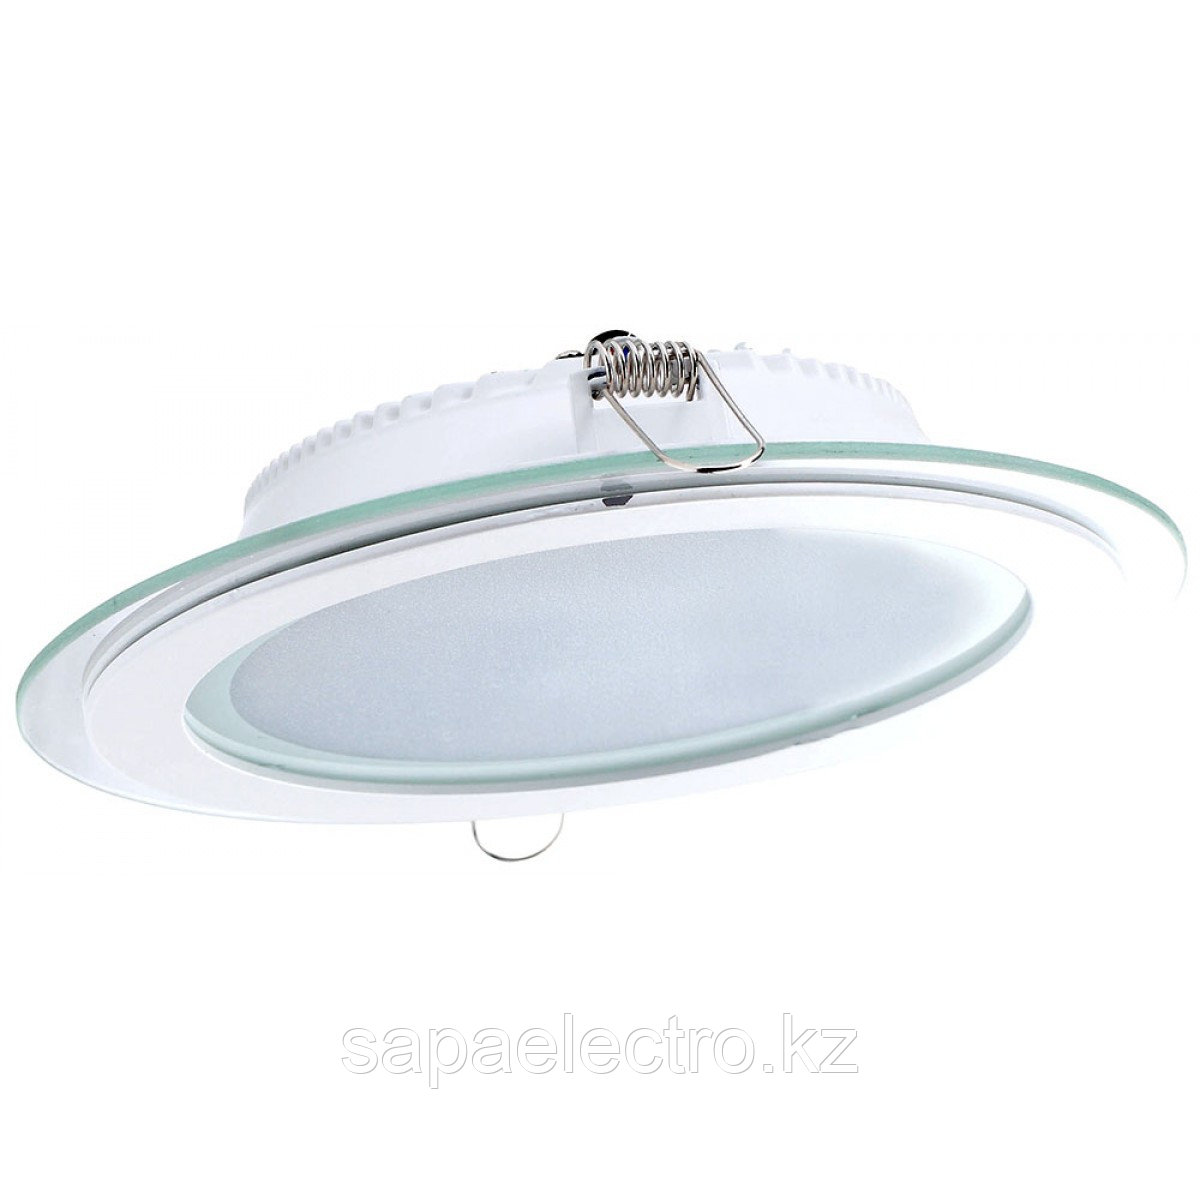 Свет-к DL LED GLASS ROUND PANEL 12W 3000K (TS)20шт,